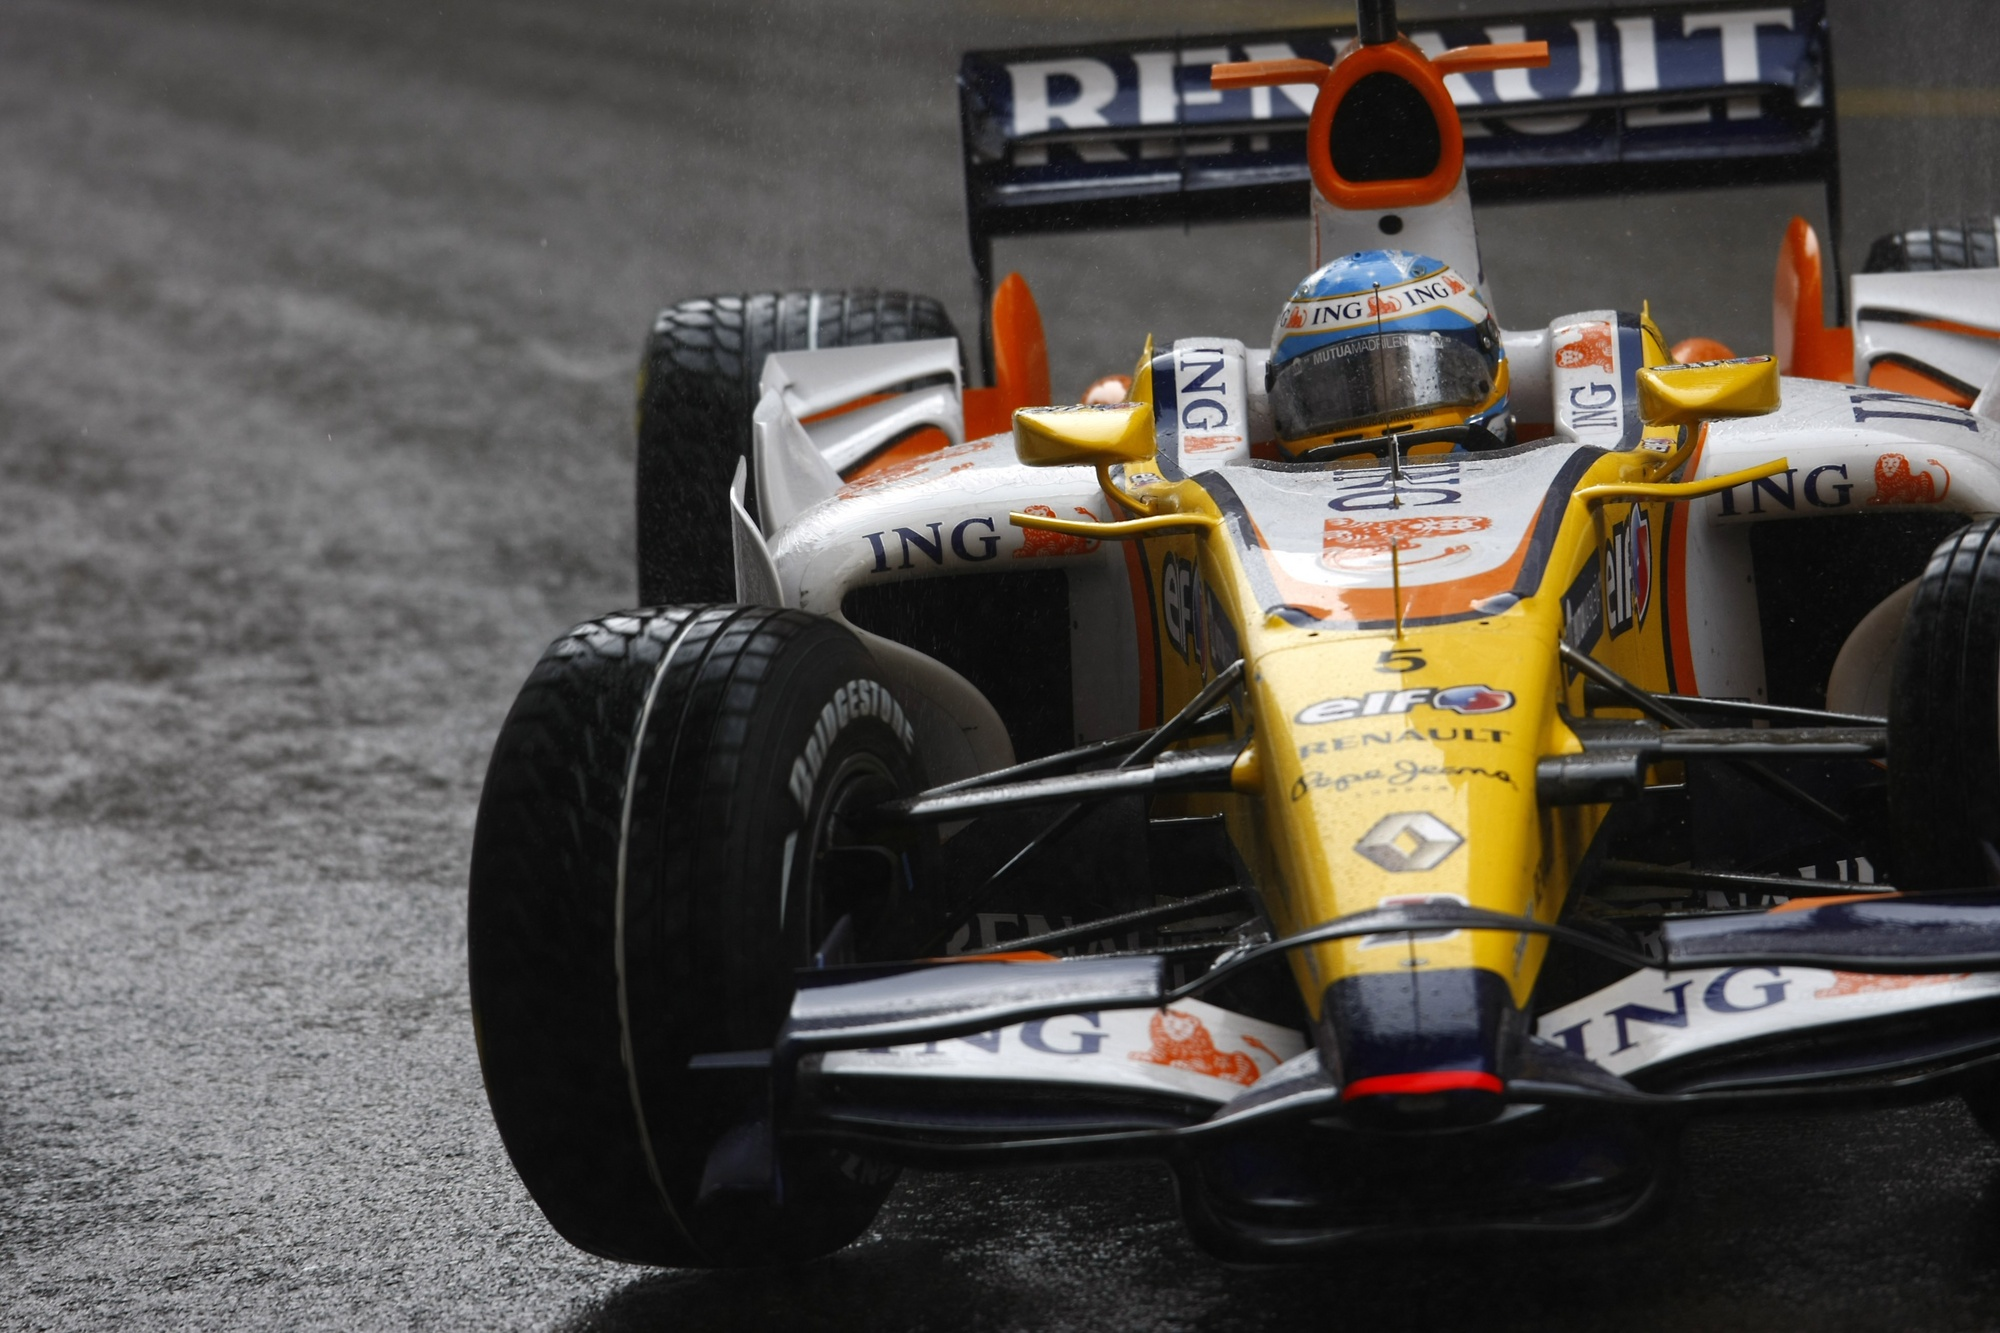 Renault r28 photo - 3